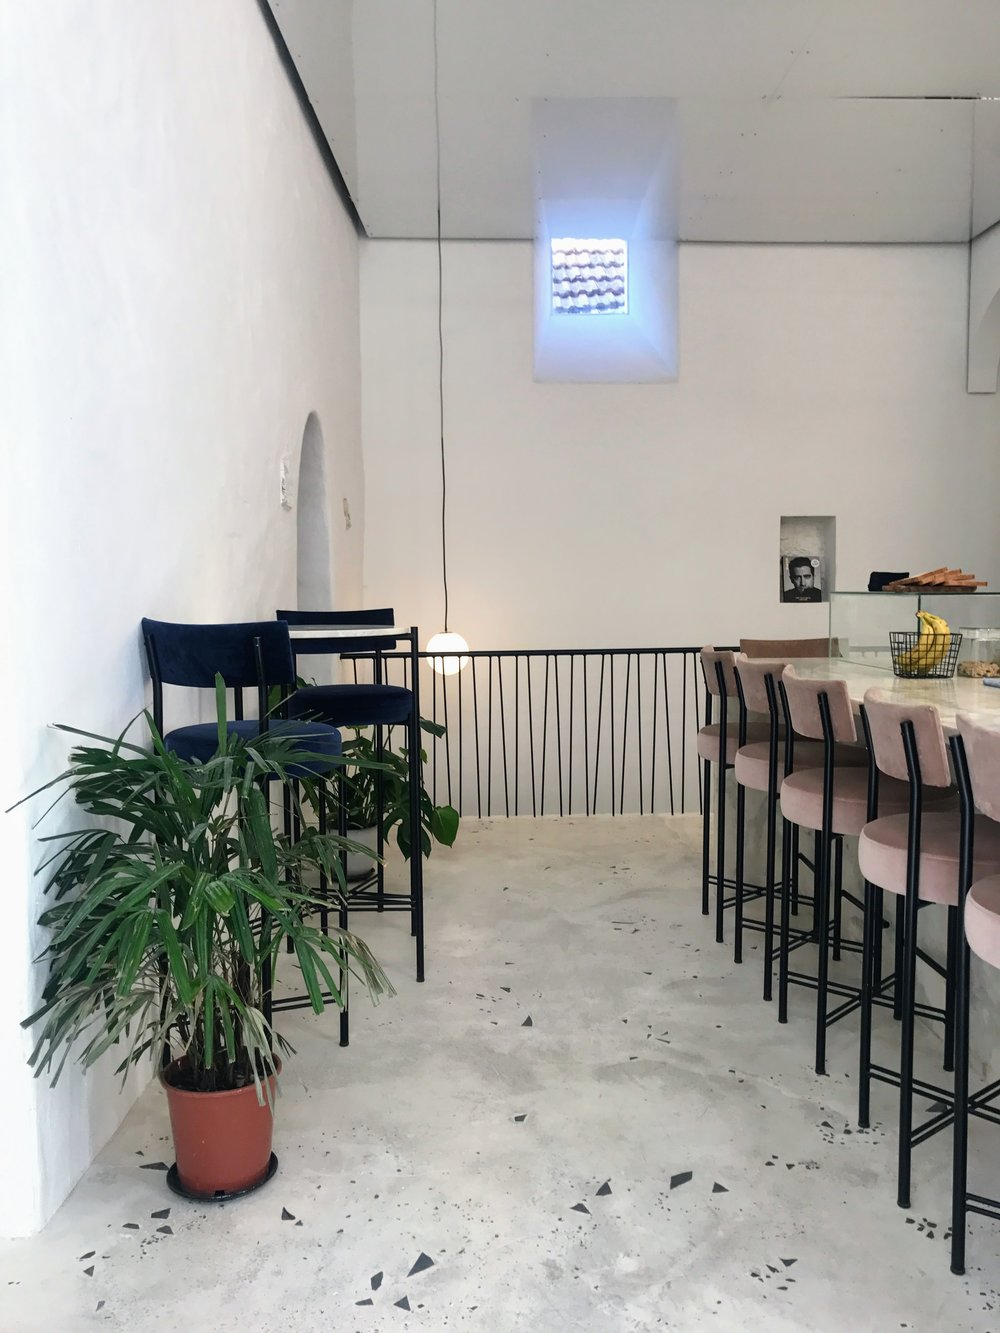 A cool spot for breakfast called  Dear Breakfast . They have great smoothies and toasts.